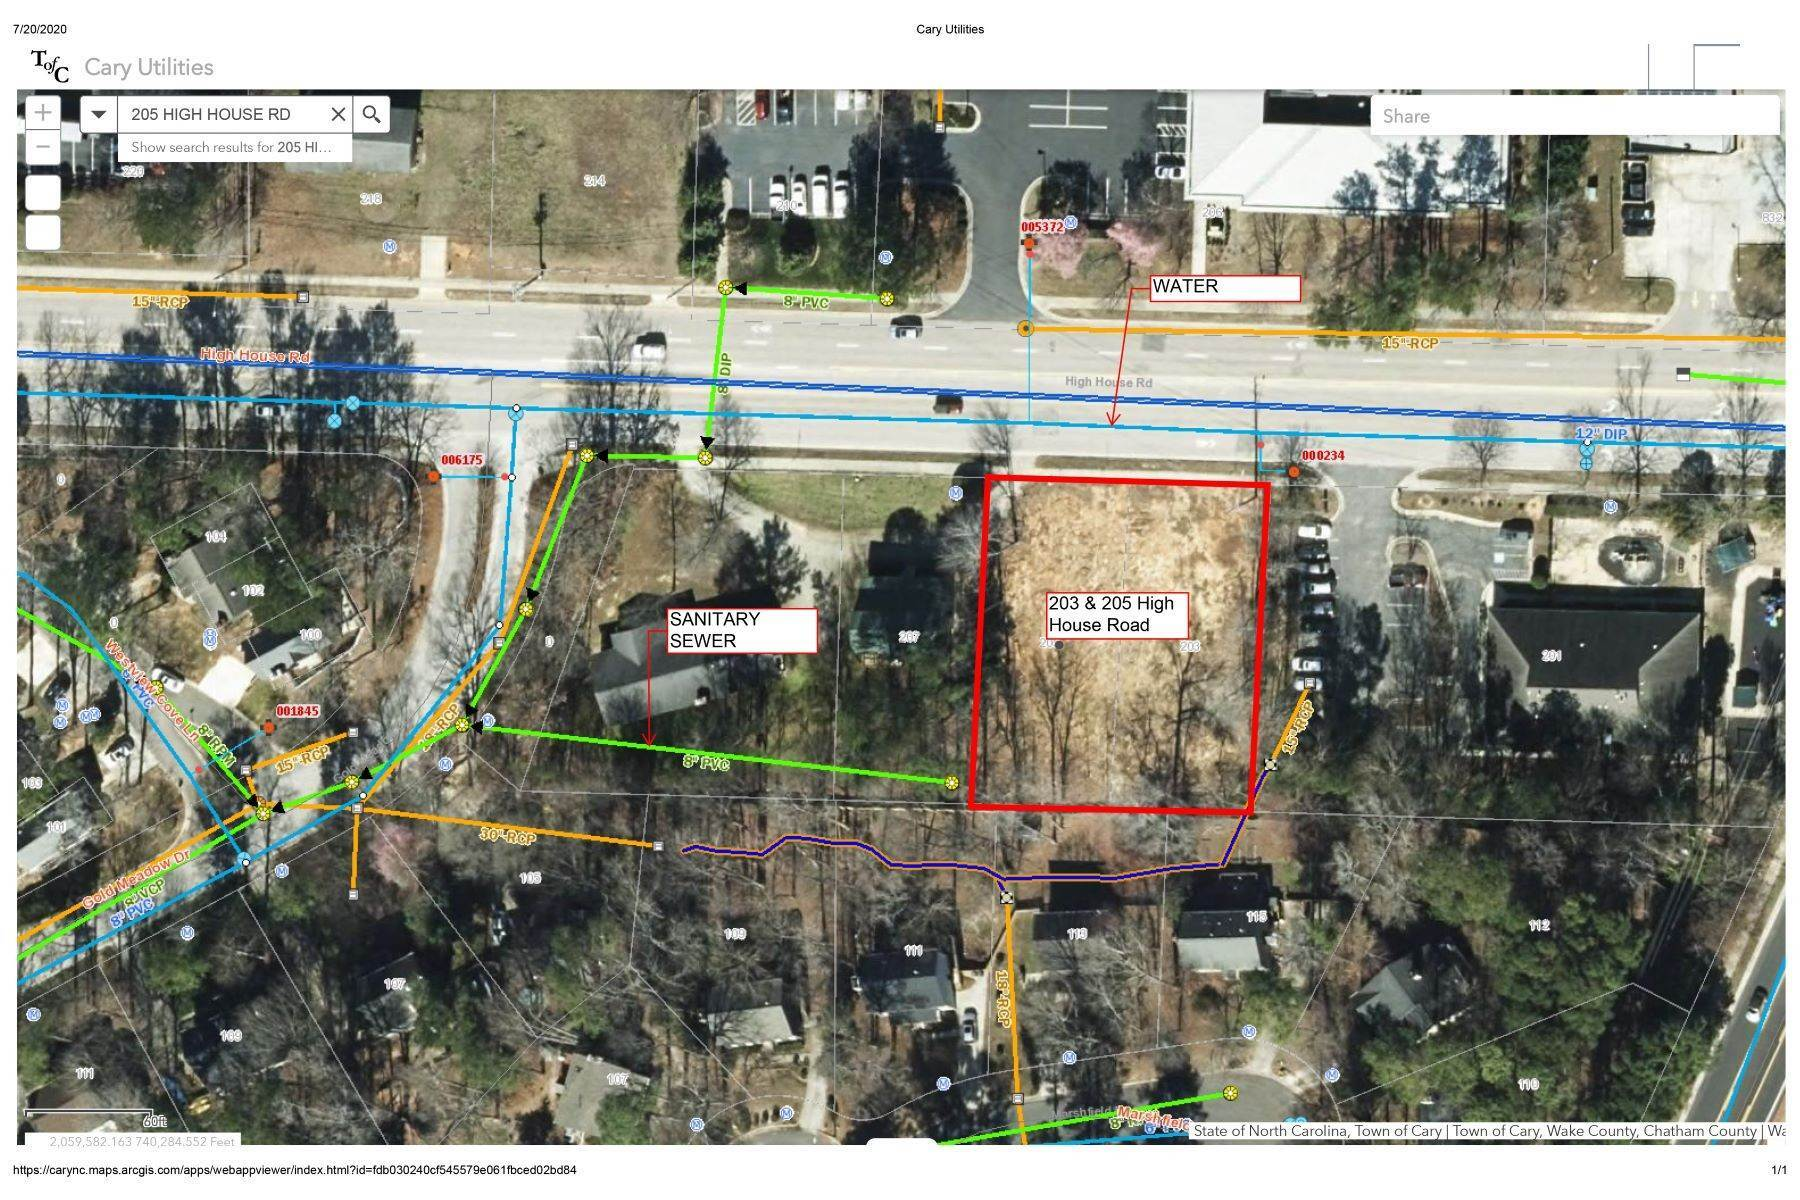 5. Land for Sale at 203 High House Rd. Cary, NC 203 High House Rd. Cary, North Carolina 27513 United States